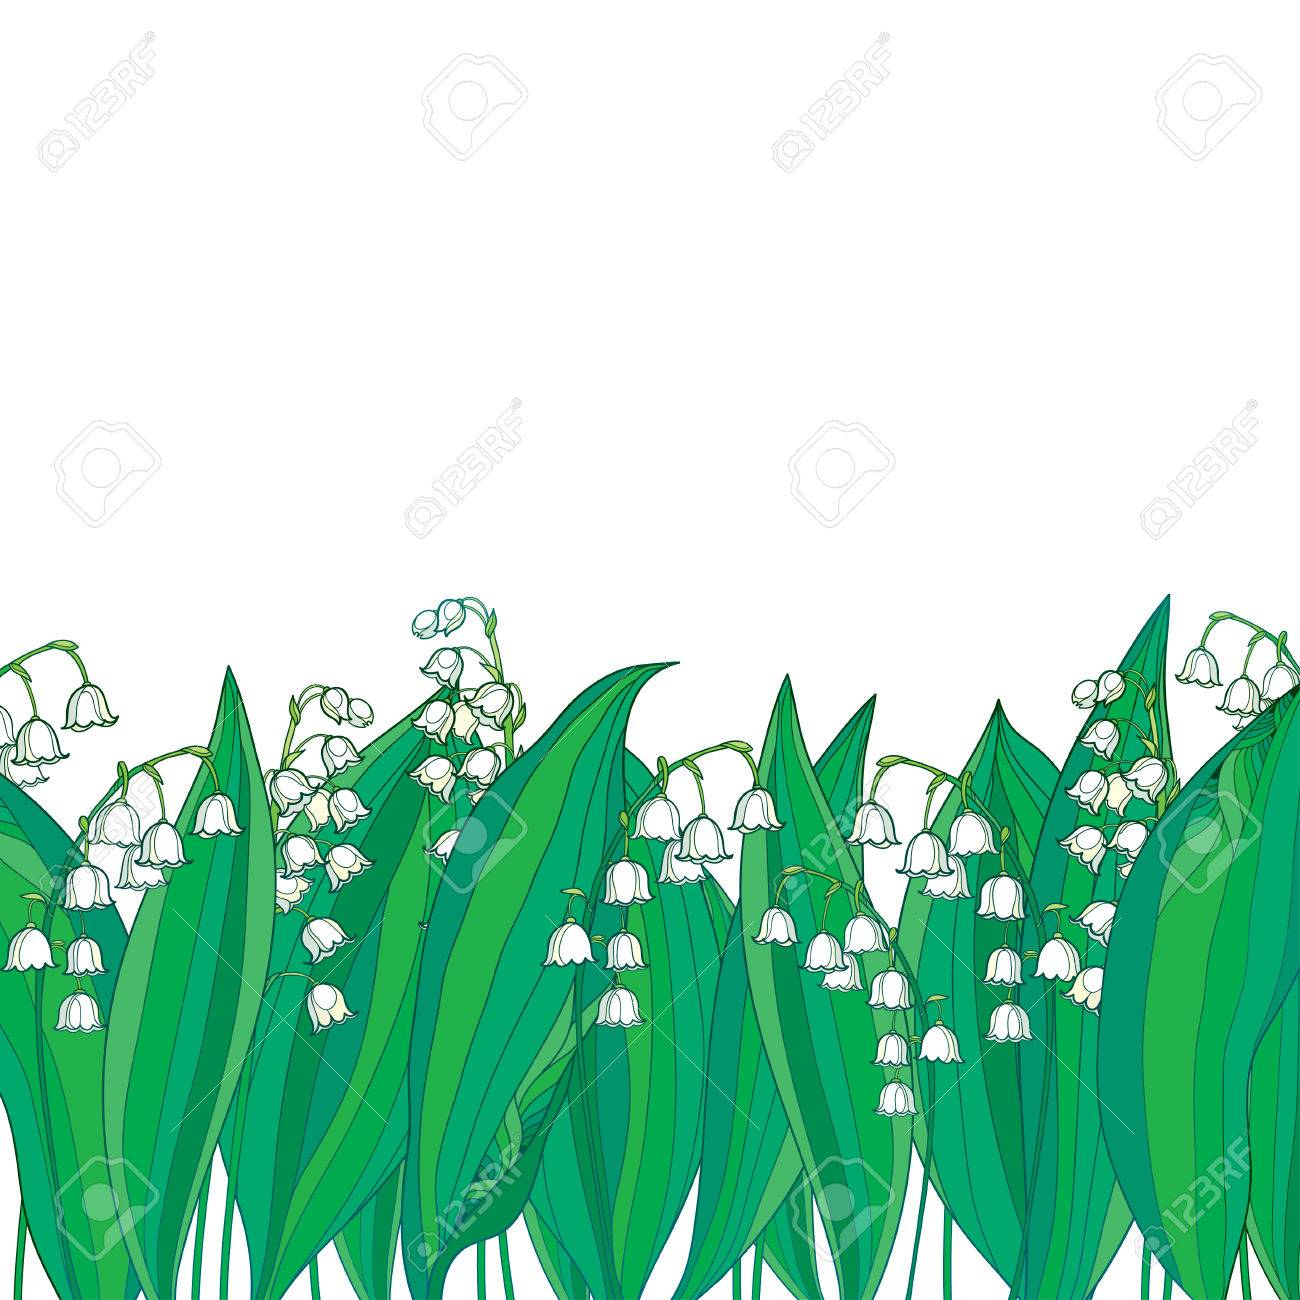 Border Met Omtrek Witte Lily Of The Valley Of Convallaria Bloem En